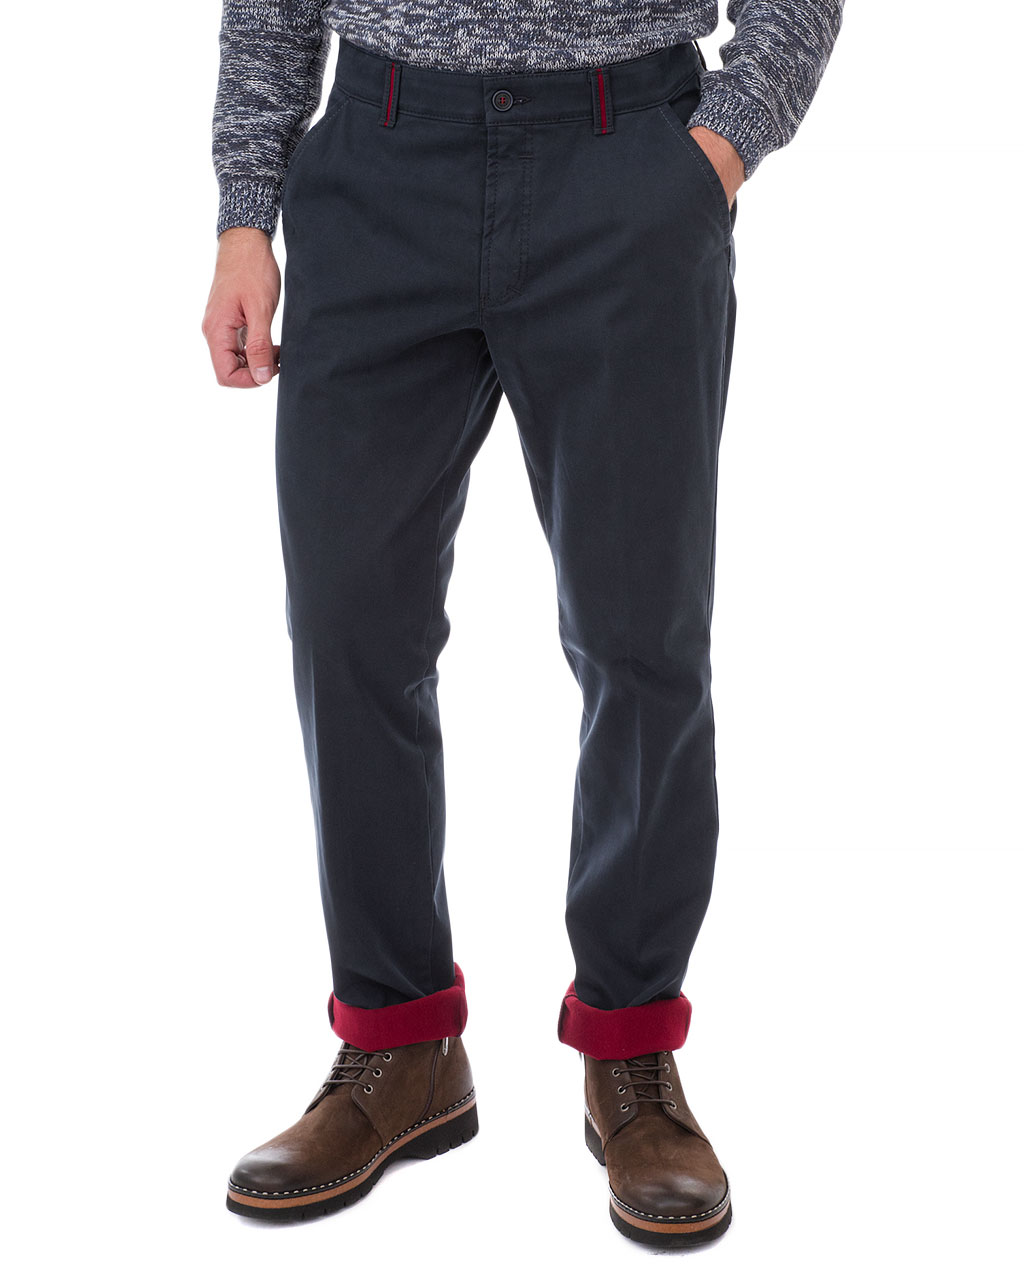 Men's trousers Carno 6826-41/19-20 (1)